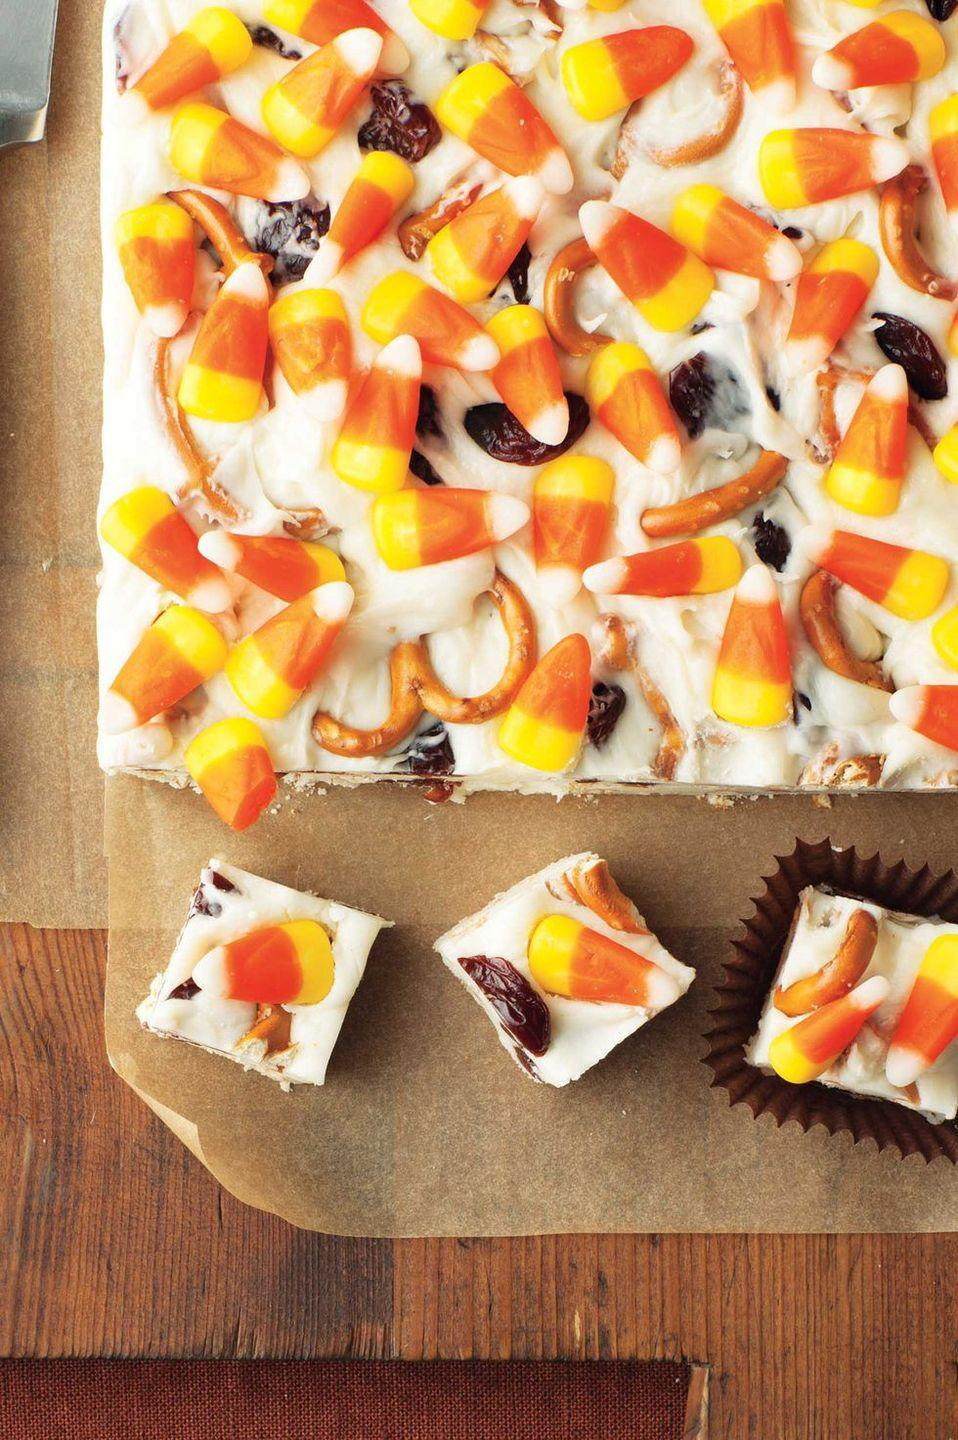 """<p>The secret ingredient: tart cherries that make sure sweet candy corn isn't too overpowering in this bite-size treat. </p><p><em><strong><a href=""""https://www.womansday.com/food-recipes/food-drinks/recipes/a11819/candy-corn-fudge-recipe-123647/"""" rel=""""nofollow noopener"""" target=""""_blank"""" data-ylk=""""slk:Get the Candy Corn Fudge recipe."""" class=""""link rapid-noclick-resp"""">Get the Candy Corn Fudge recipe.</a></strong></em></p>"""